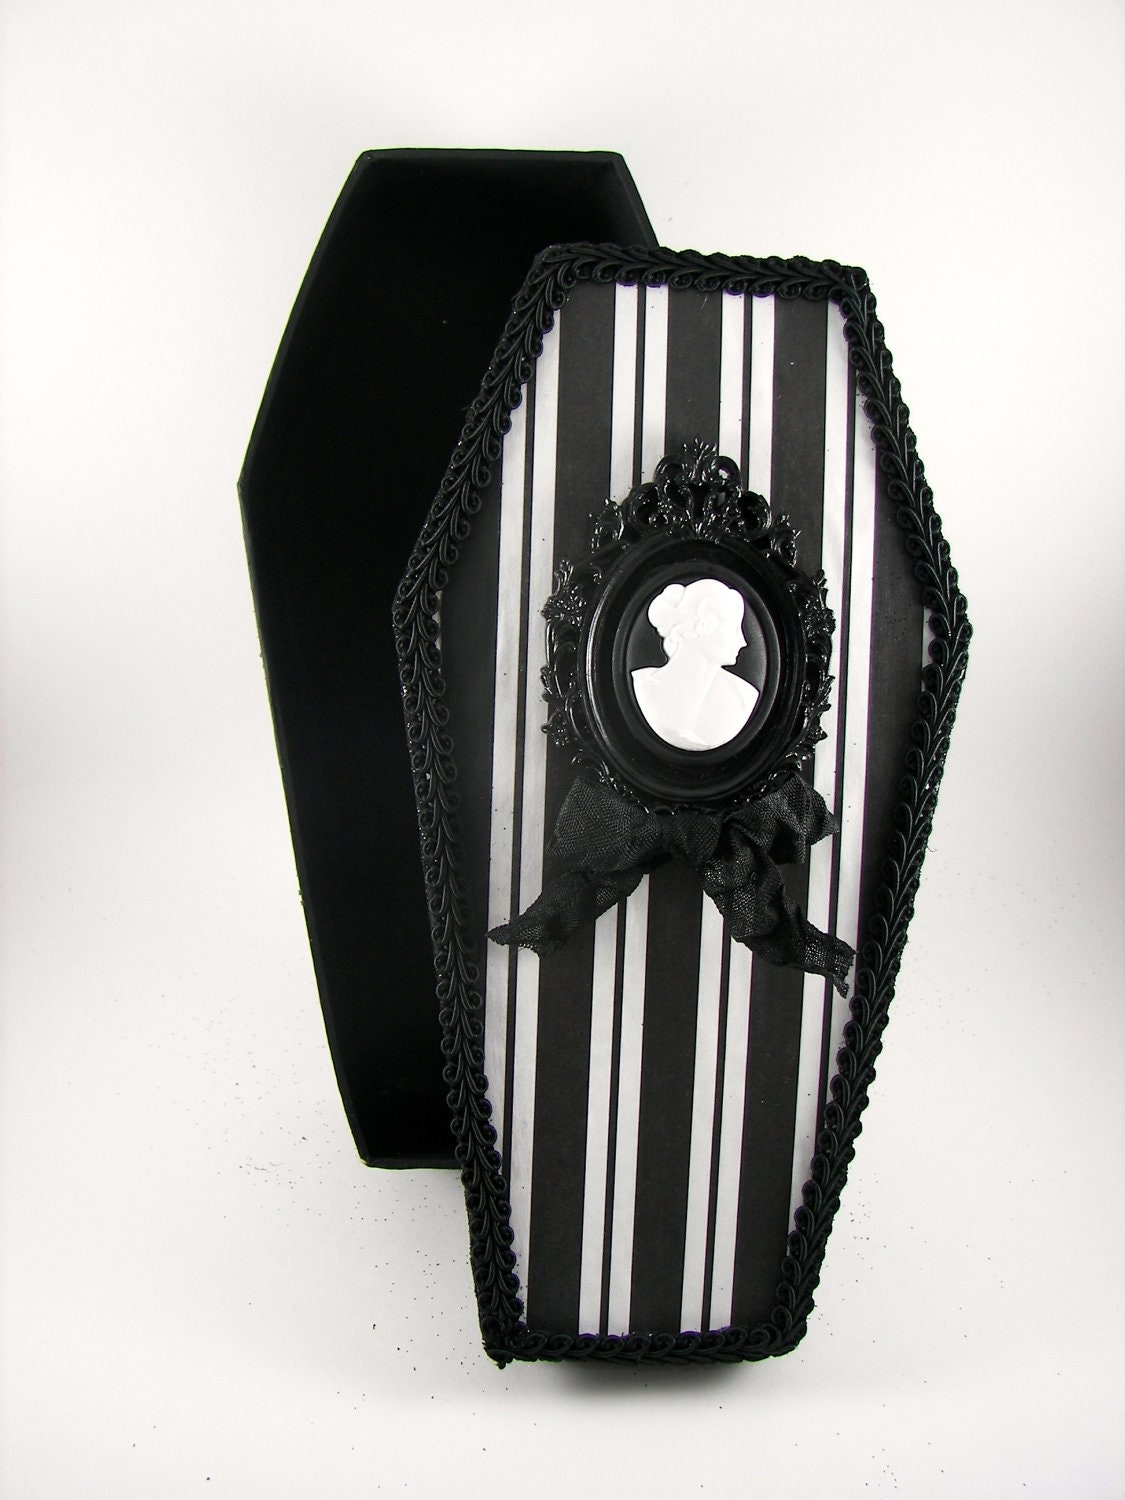 Spooky Halloween Coffin Decoration By SparkleLovesWhimsey